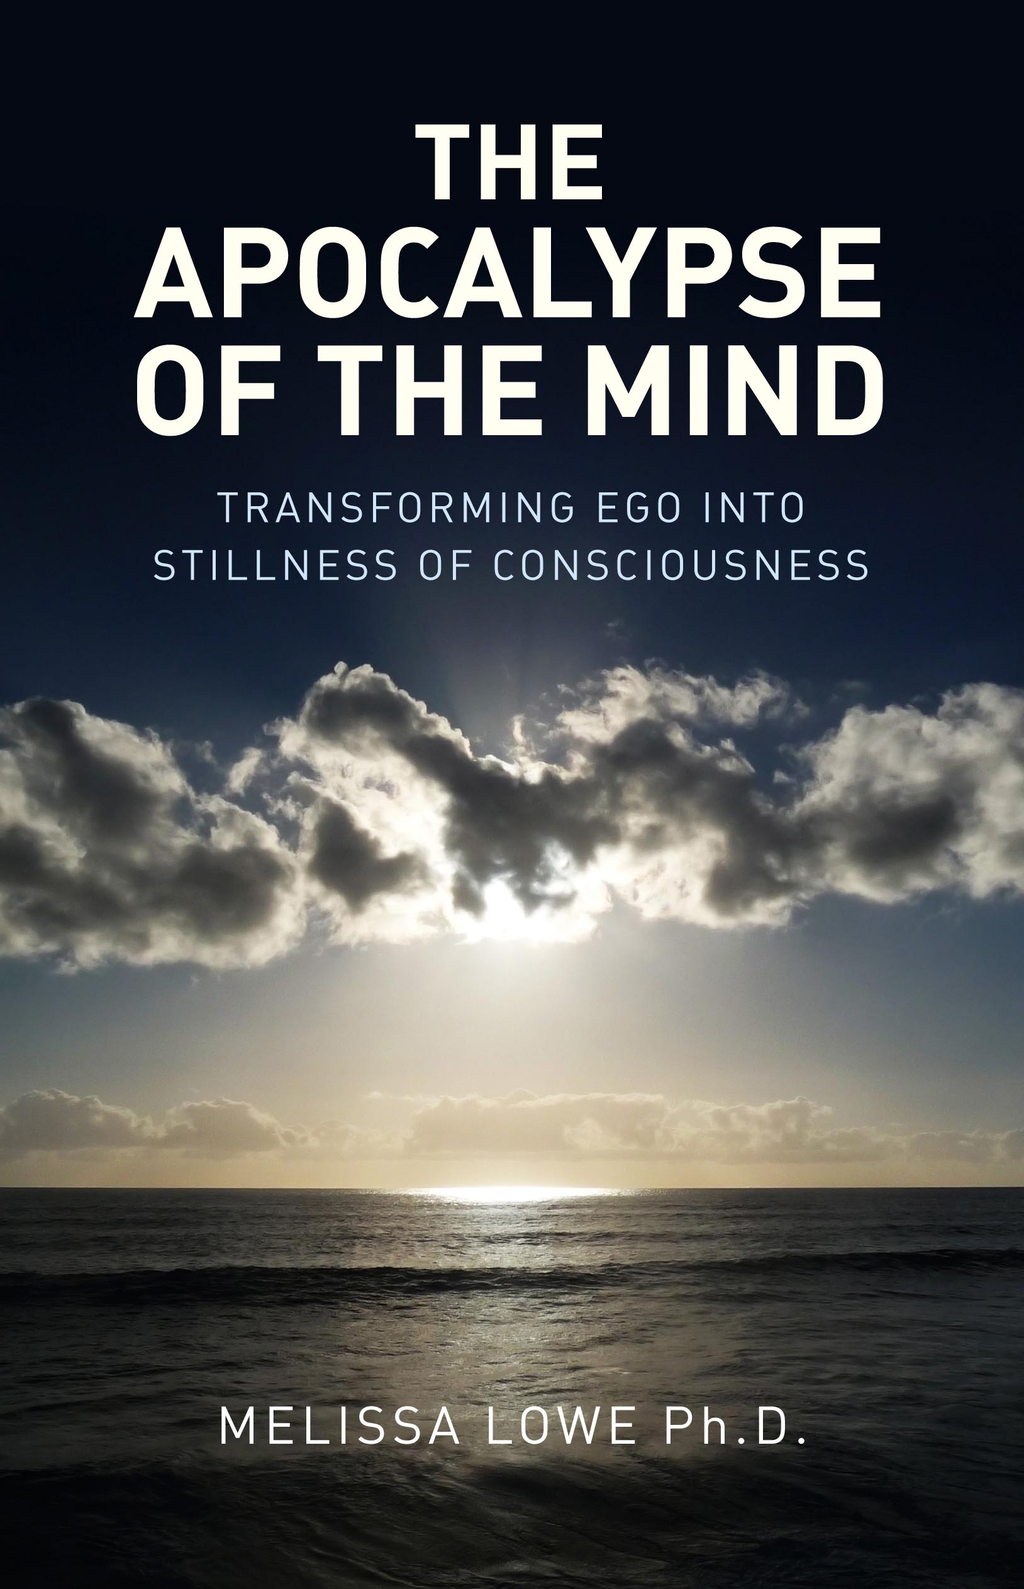 The Apocalypse of the Mind: Transforming Ego into Stillness of Consciousness